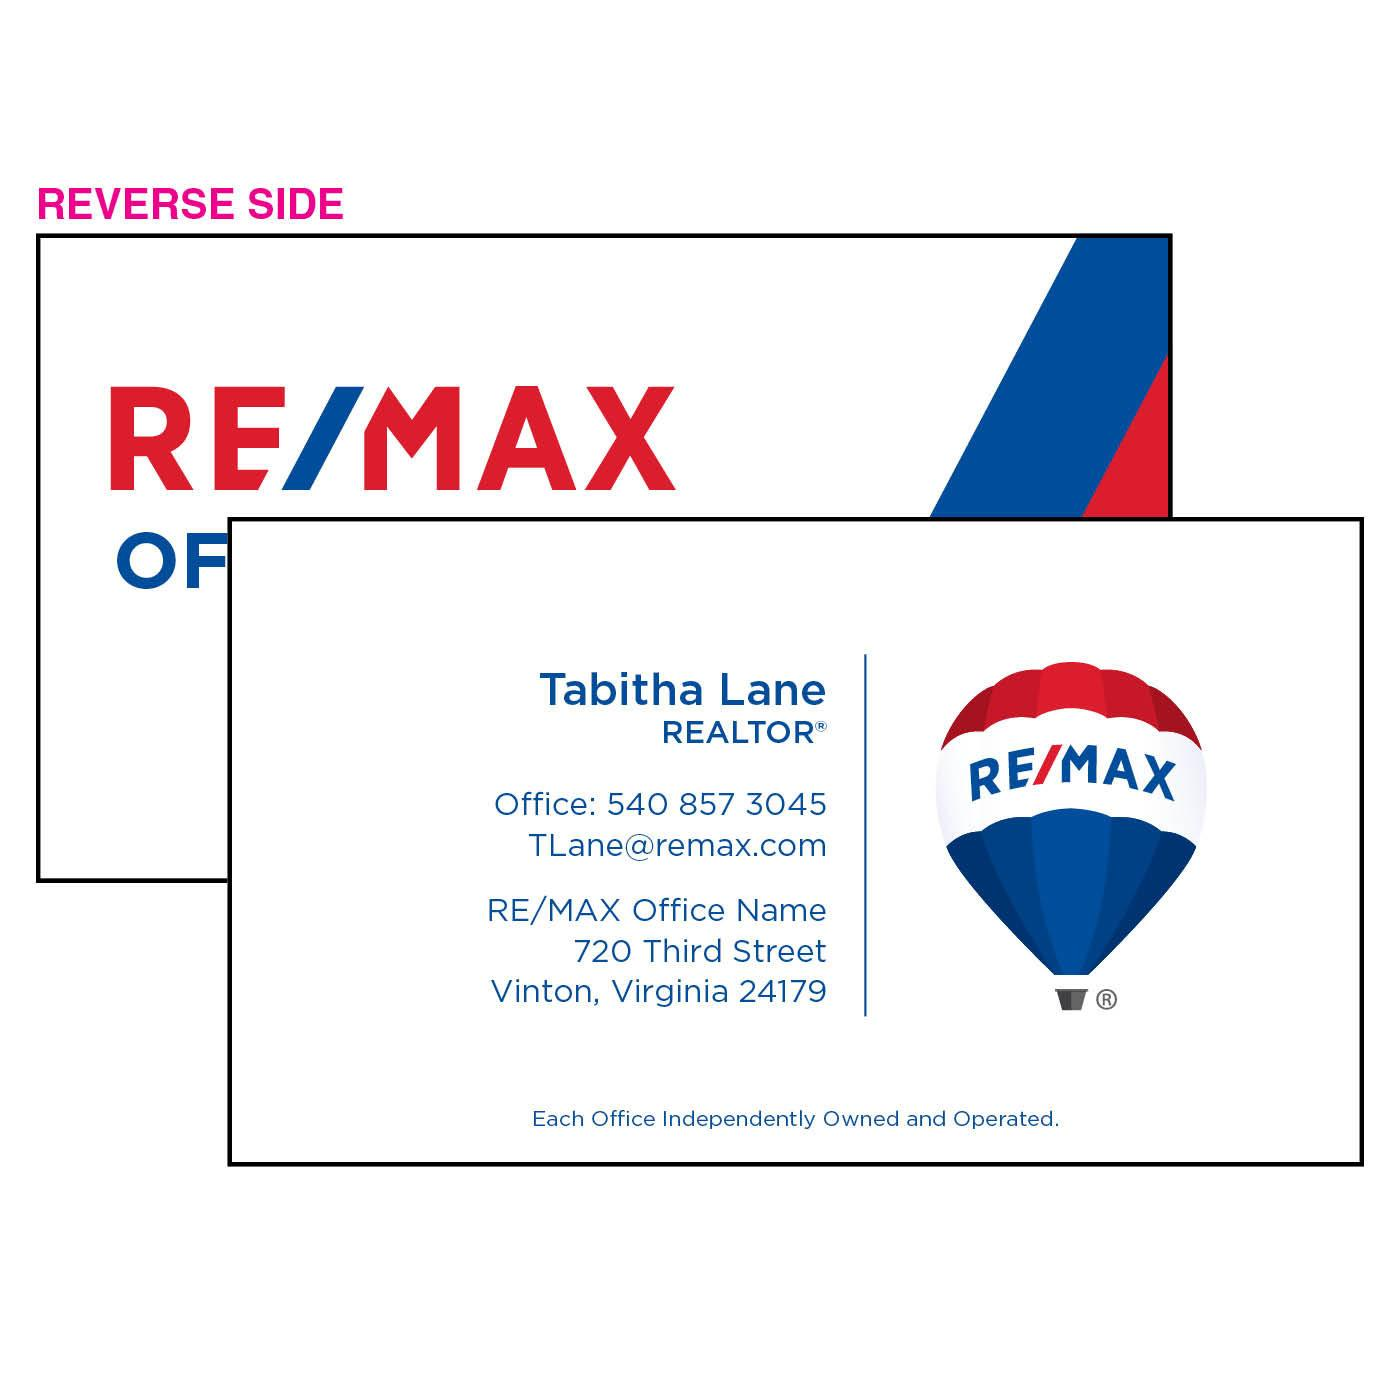 RE/MAX Balloon Business Card